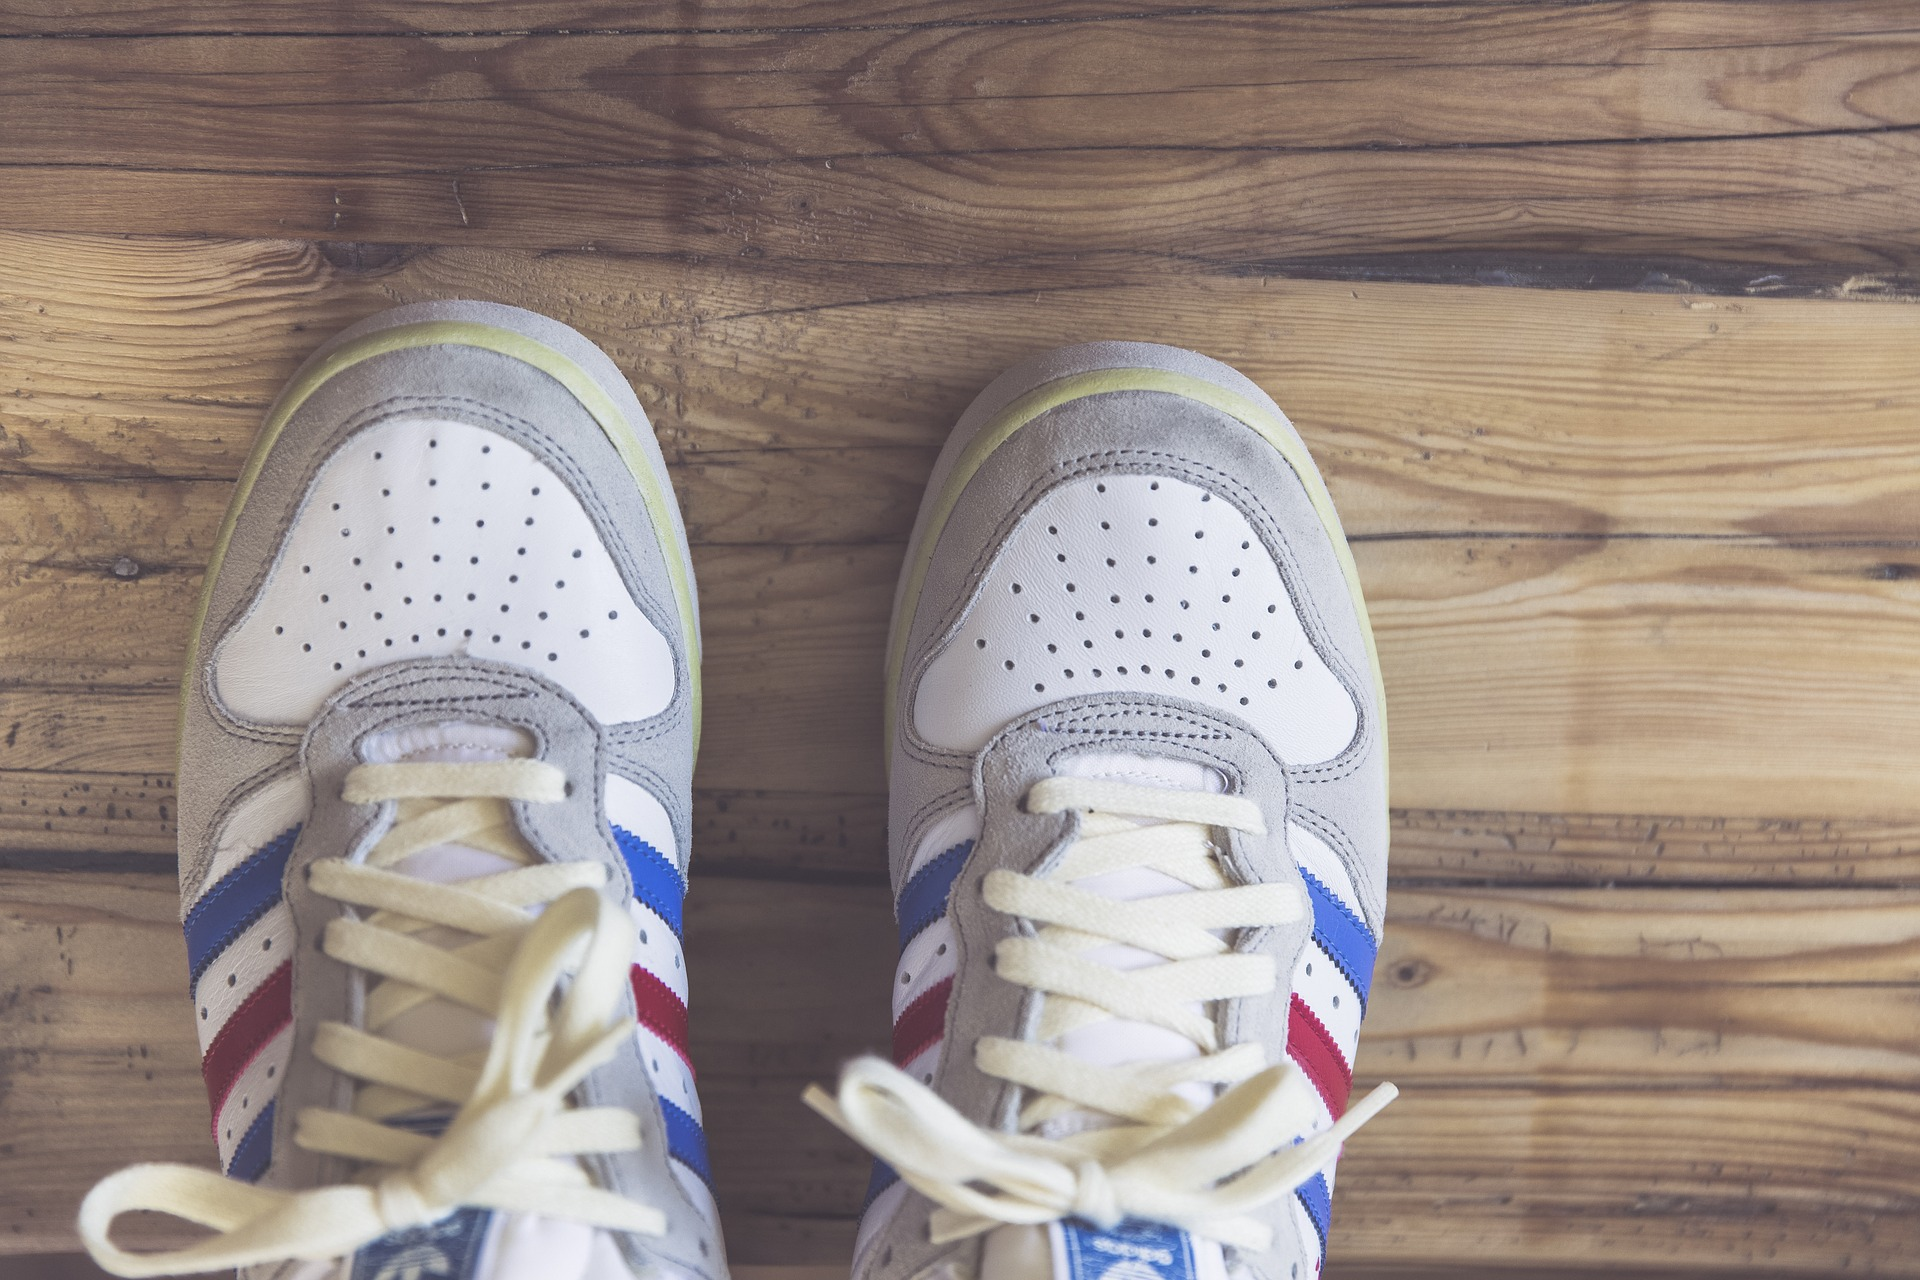 How to Choose The Right Sneakers for Your Workout  - Leave Room For Your Toes.jpg